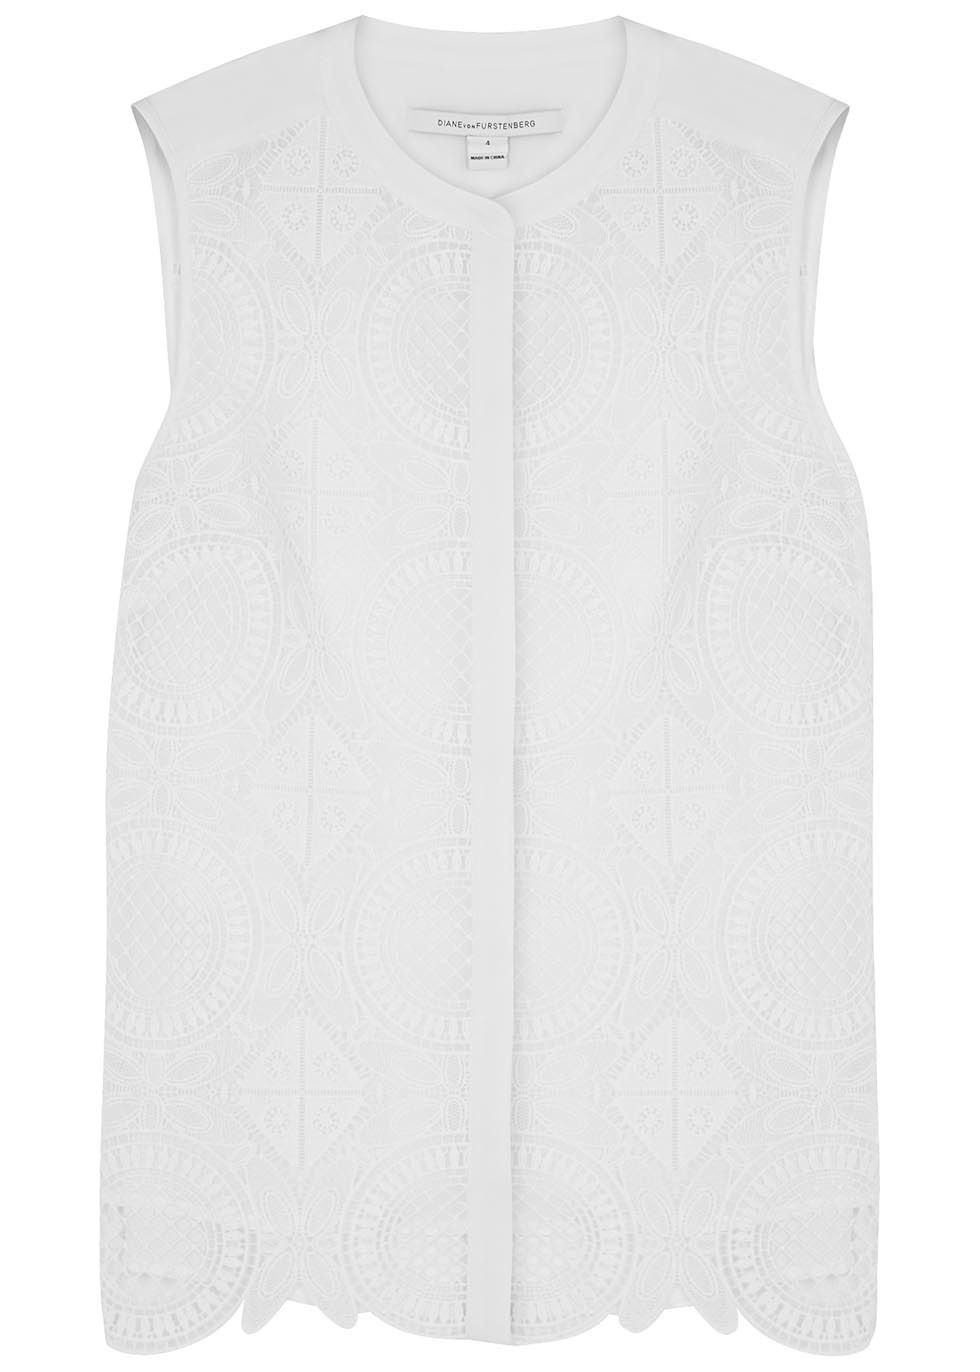 Lakyn White Crochet Panelled Top - pattern: plain; sleeve style: sleeveless; predominant colour: white; occasions: casual; length: standard; style: top; neckline: collarstand; fibres: polyester/polyamide - 100%; fit: body skimming; sleeve length: sleeveless; pattern type: fabric; texture group: other - light to midweight; season: s/s 2016; wardrobe: basic